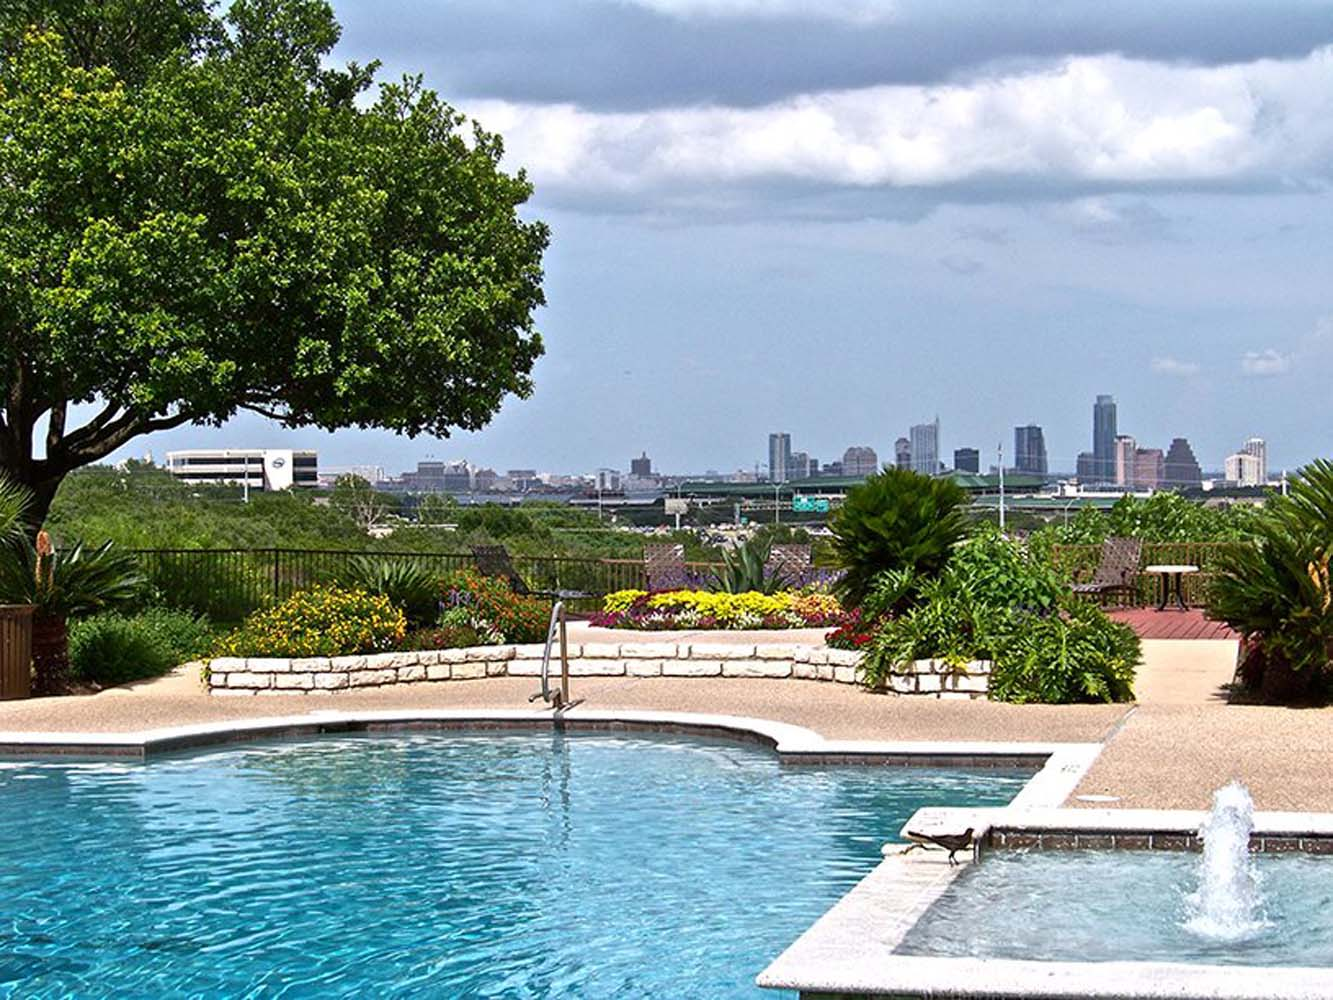 POOL WITH CITY VIEWS